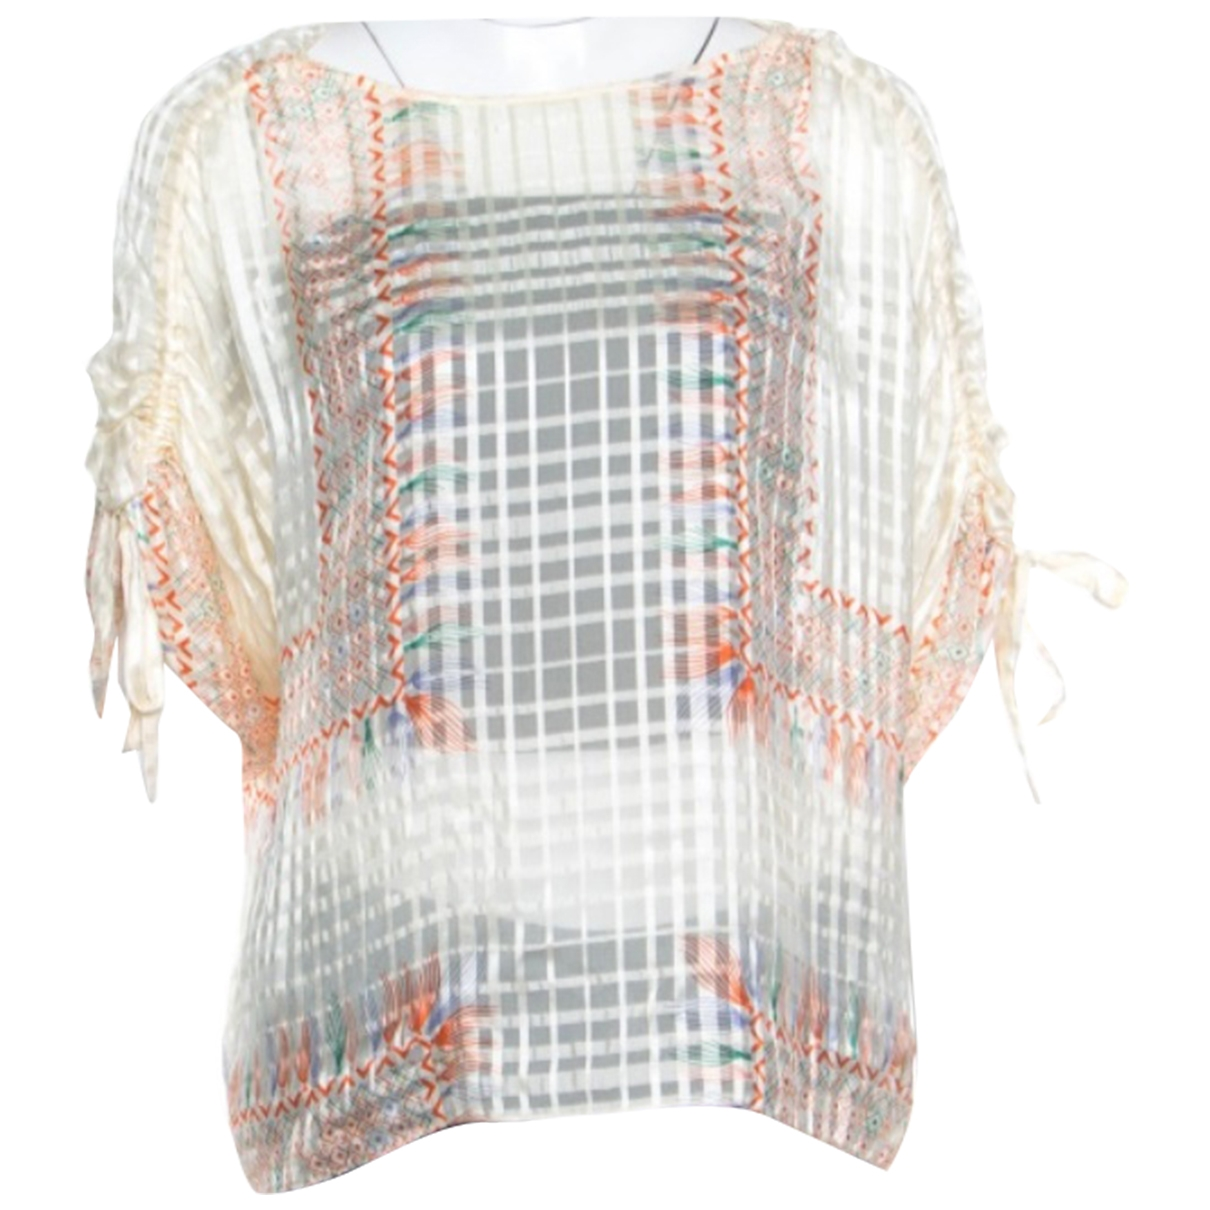 Chloé \N Silk  top for Women M International